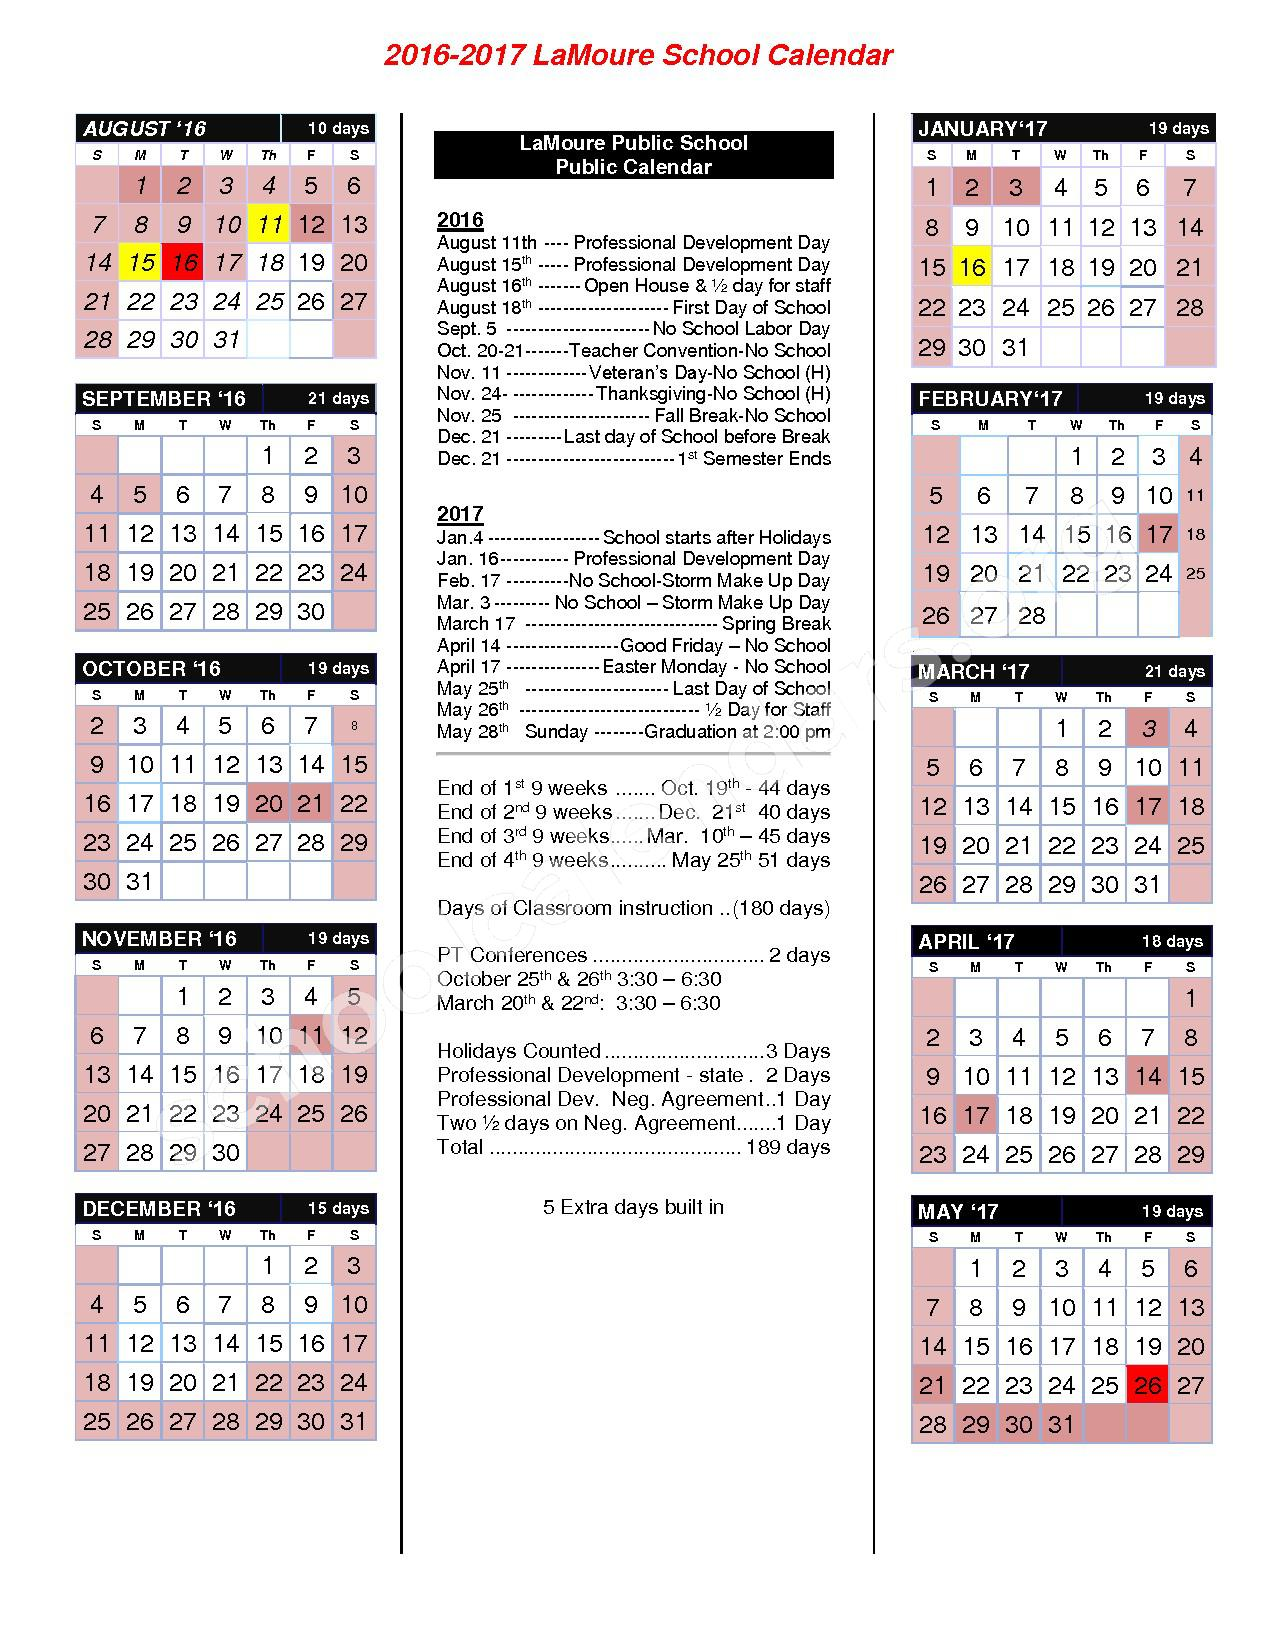 2016 - 2017 School Calendar – Lamoure High School – page 1